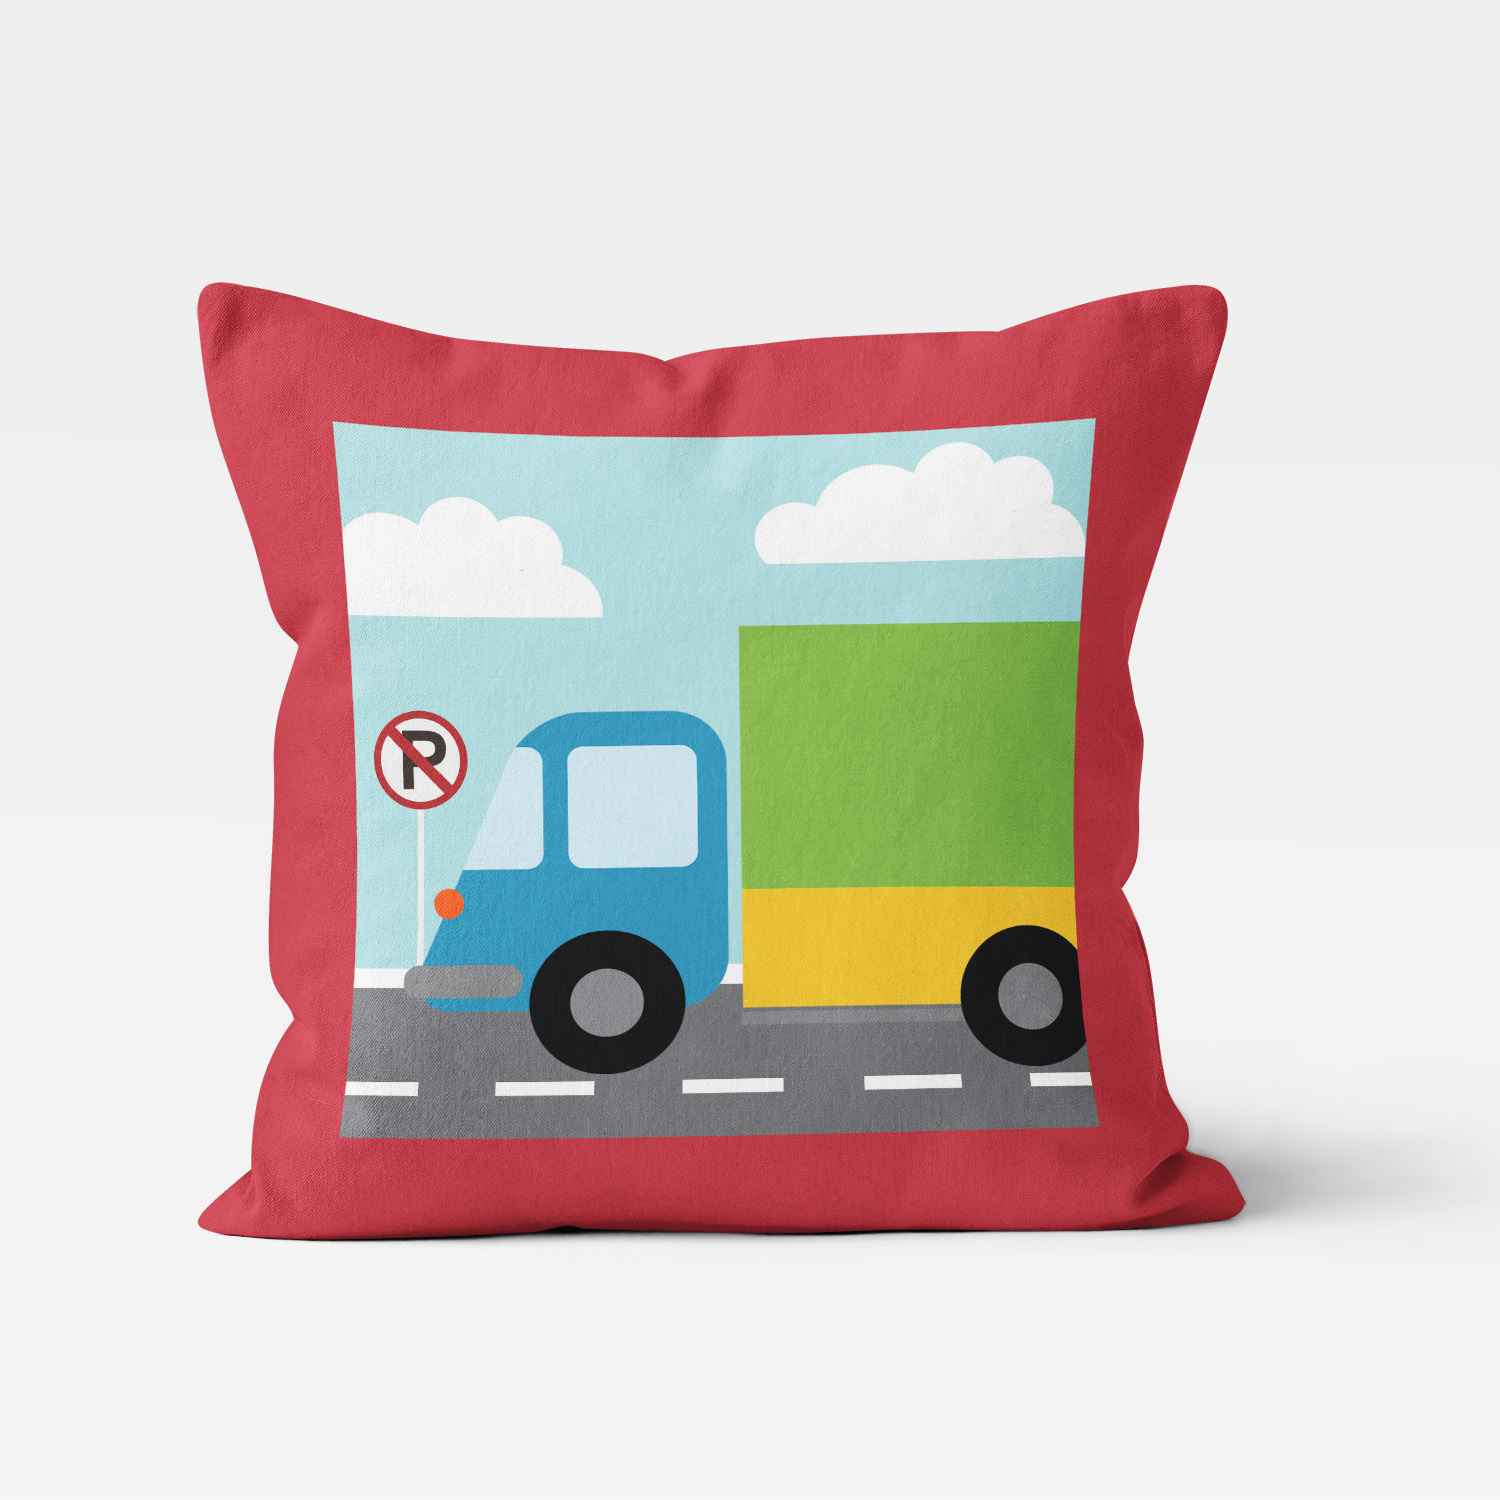 TTGV-PIL18X18-D TTGV-PIL18X18-A Things That Go Vroom Transportation Theme Truck Boys Kids Accent Throw Pillow Room Decor Accessories by Pickleberry Kids